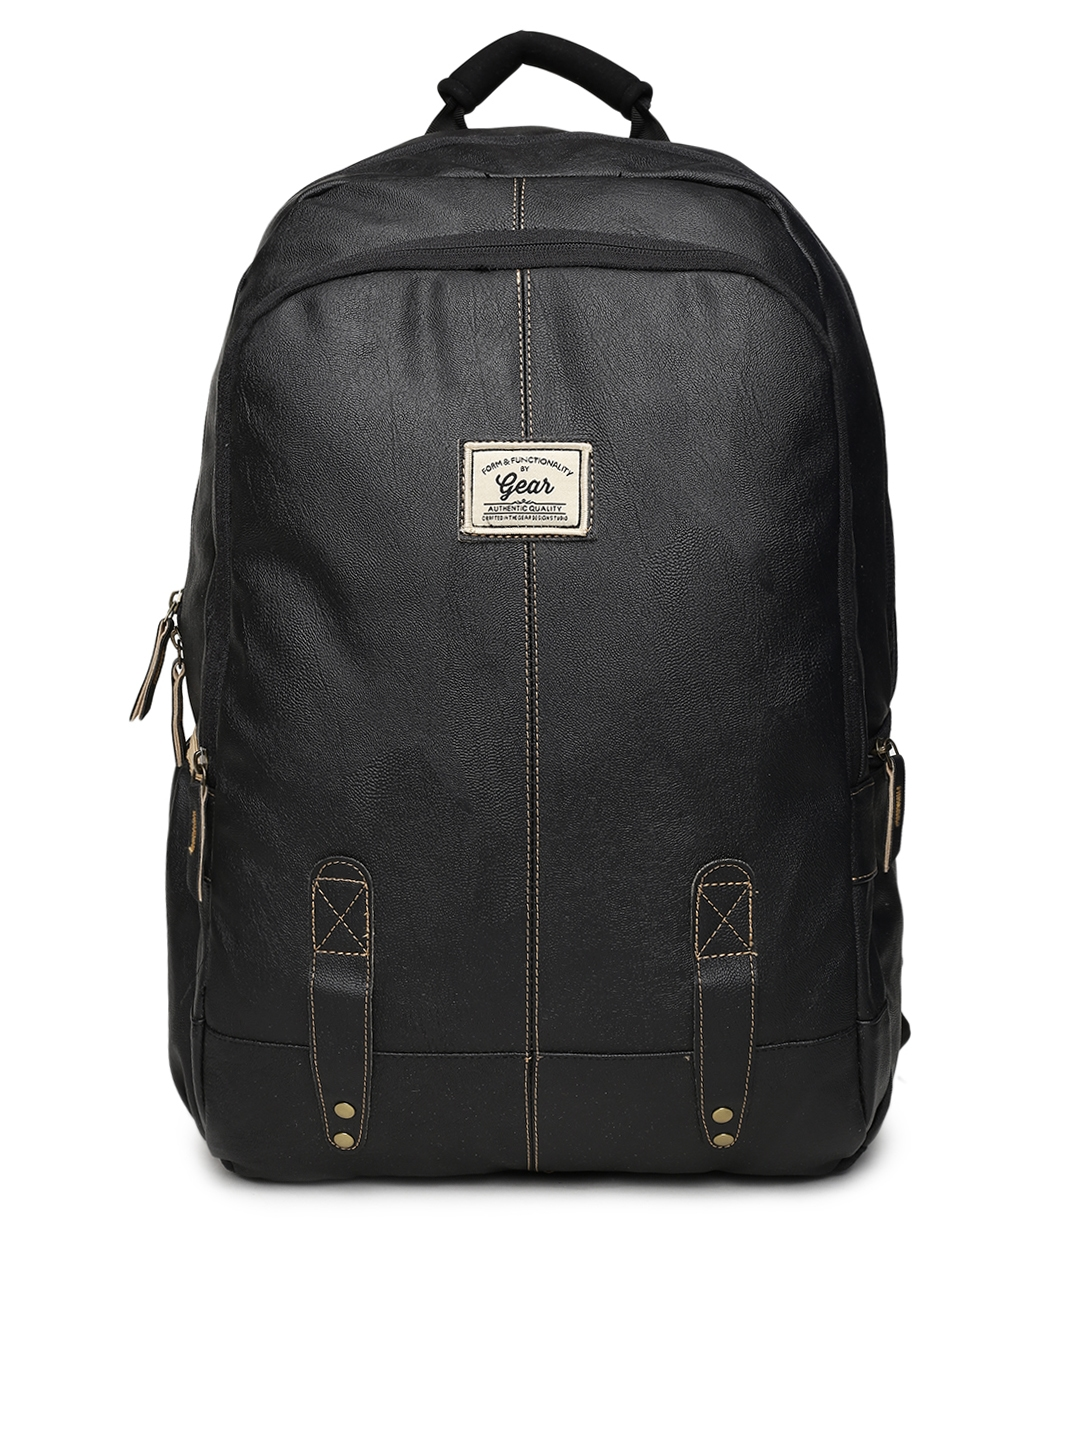 4b7543caa658 Buy Gear Unisex Black Faux Leather Solid Backpack - Backpacks for ...